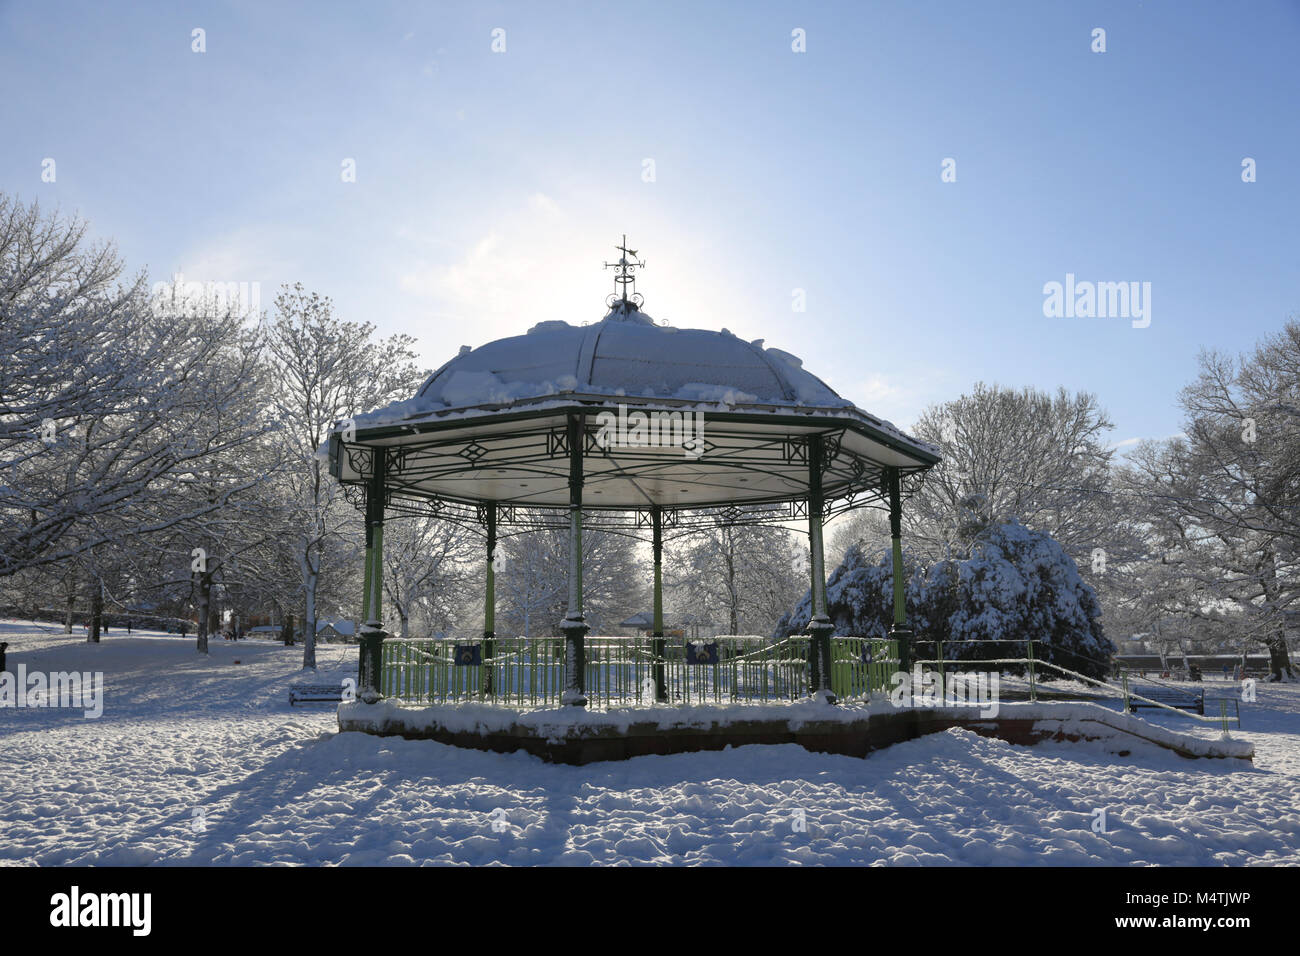 The bandstand in Mary Stevens park, Stourbridge on a sunny winters day. - Stock Image